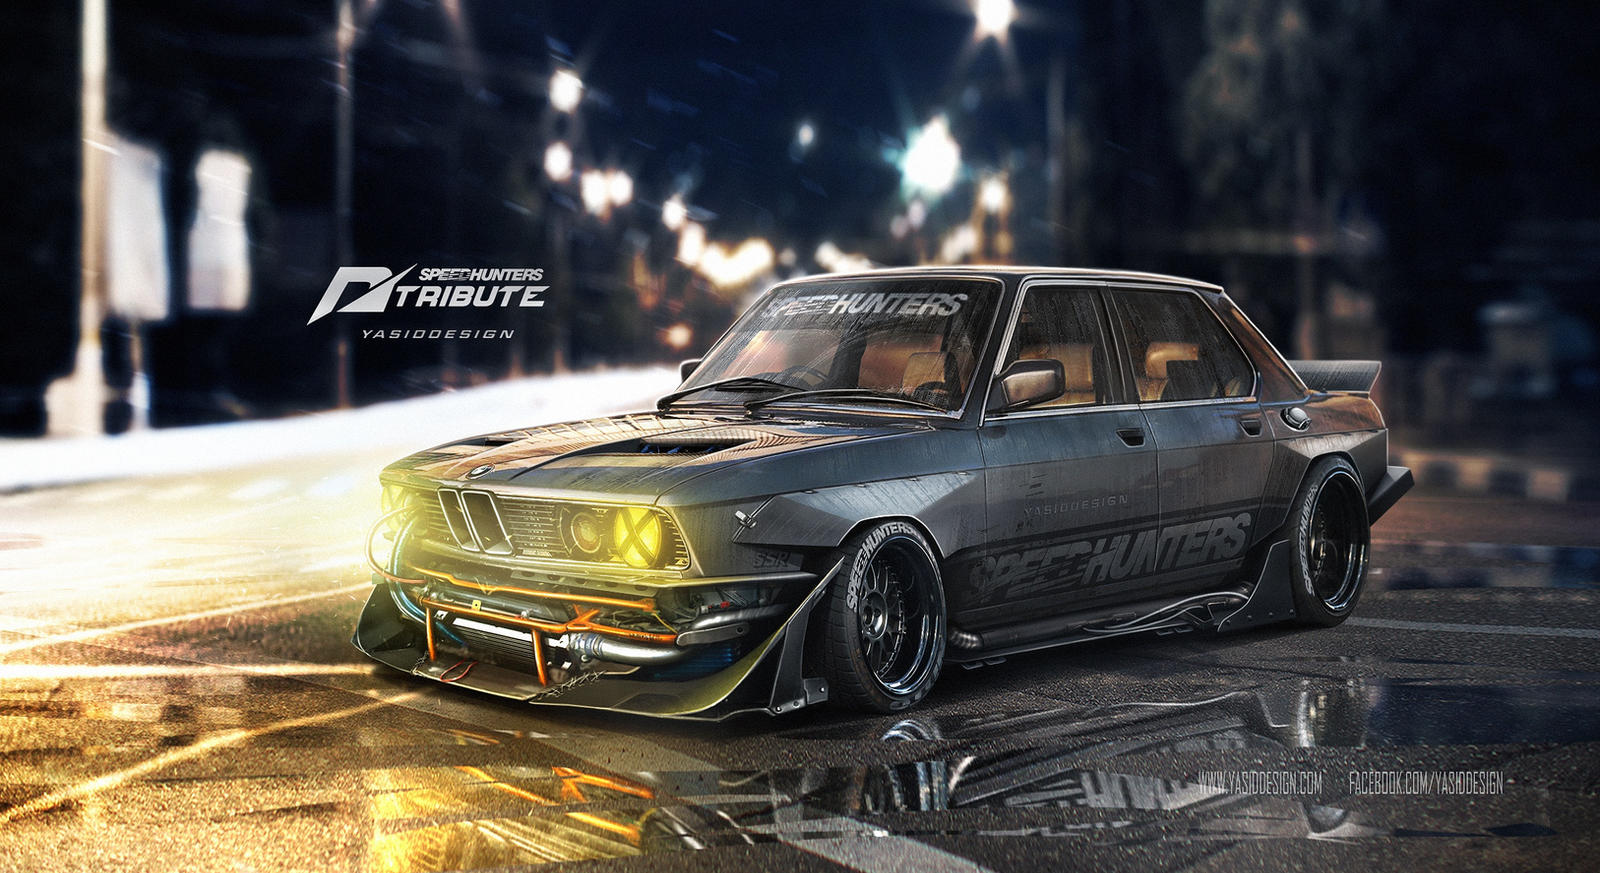 Speedhunters Bmw 535i Need For Speed Tribute By Yasiddesign On Deviantart